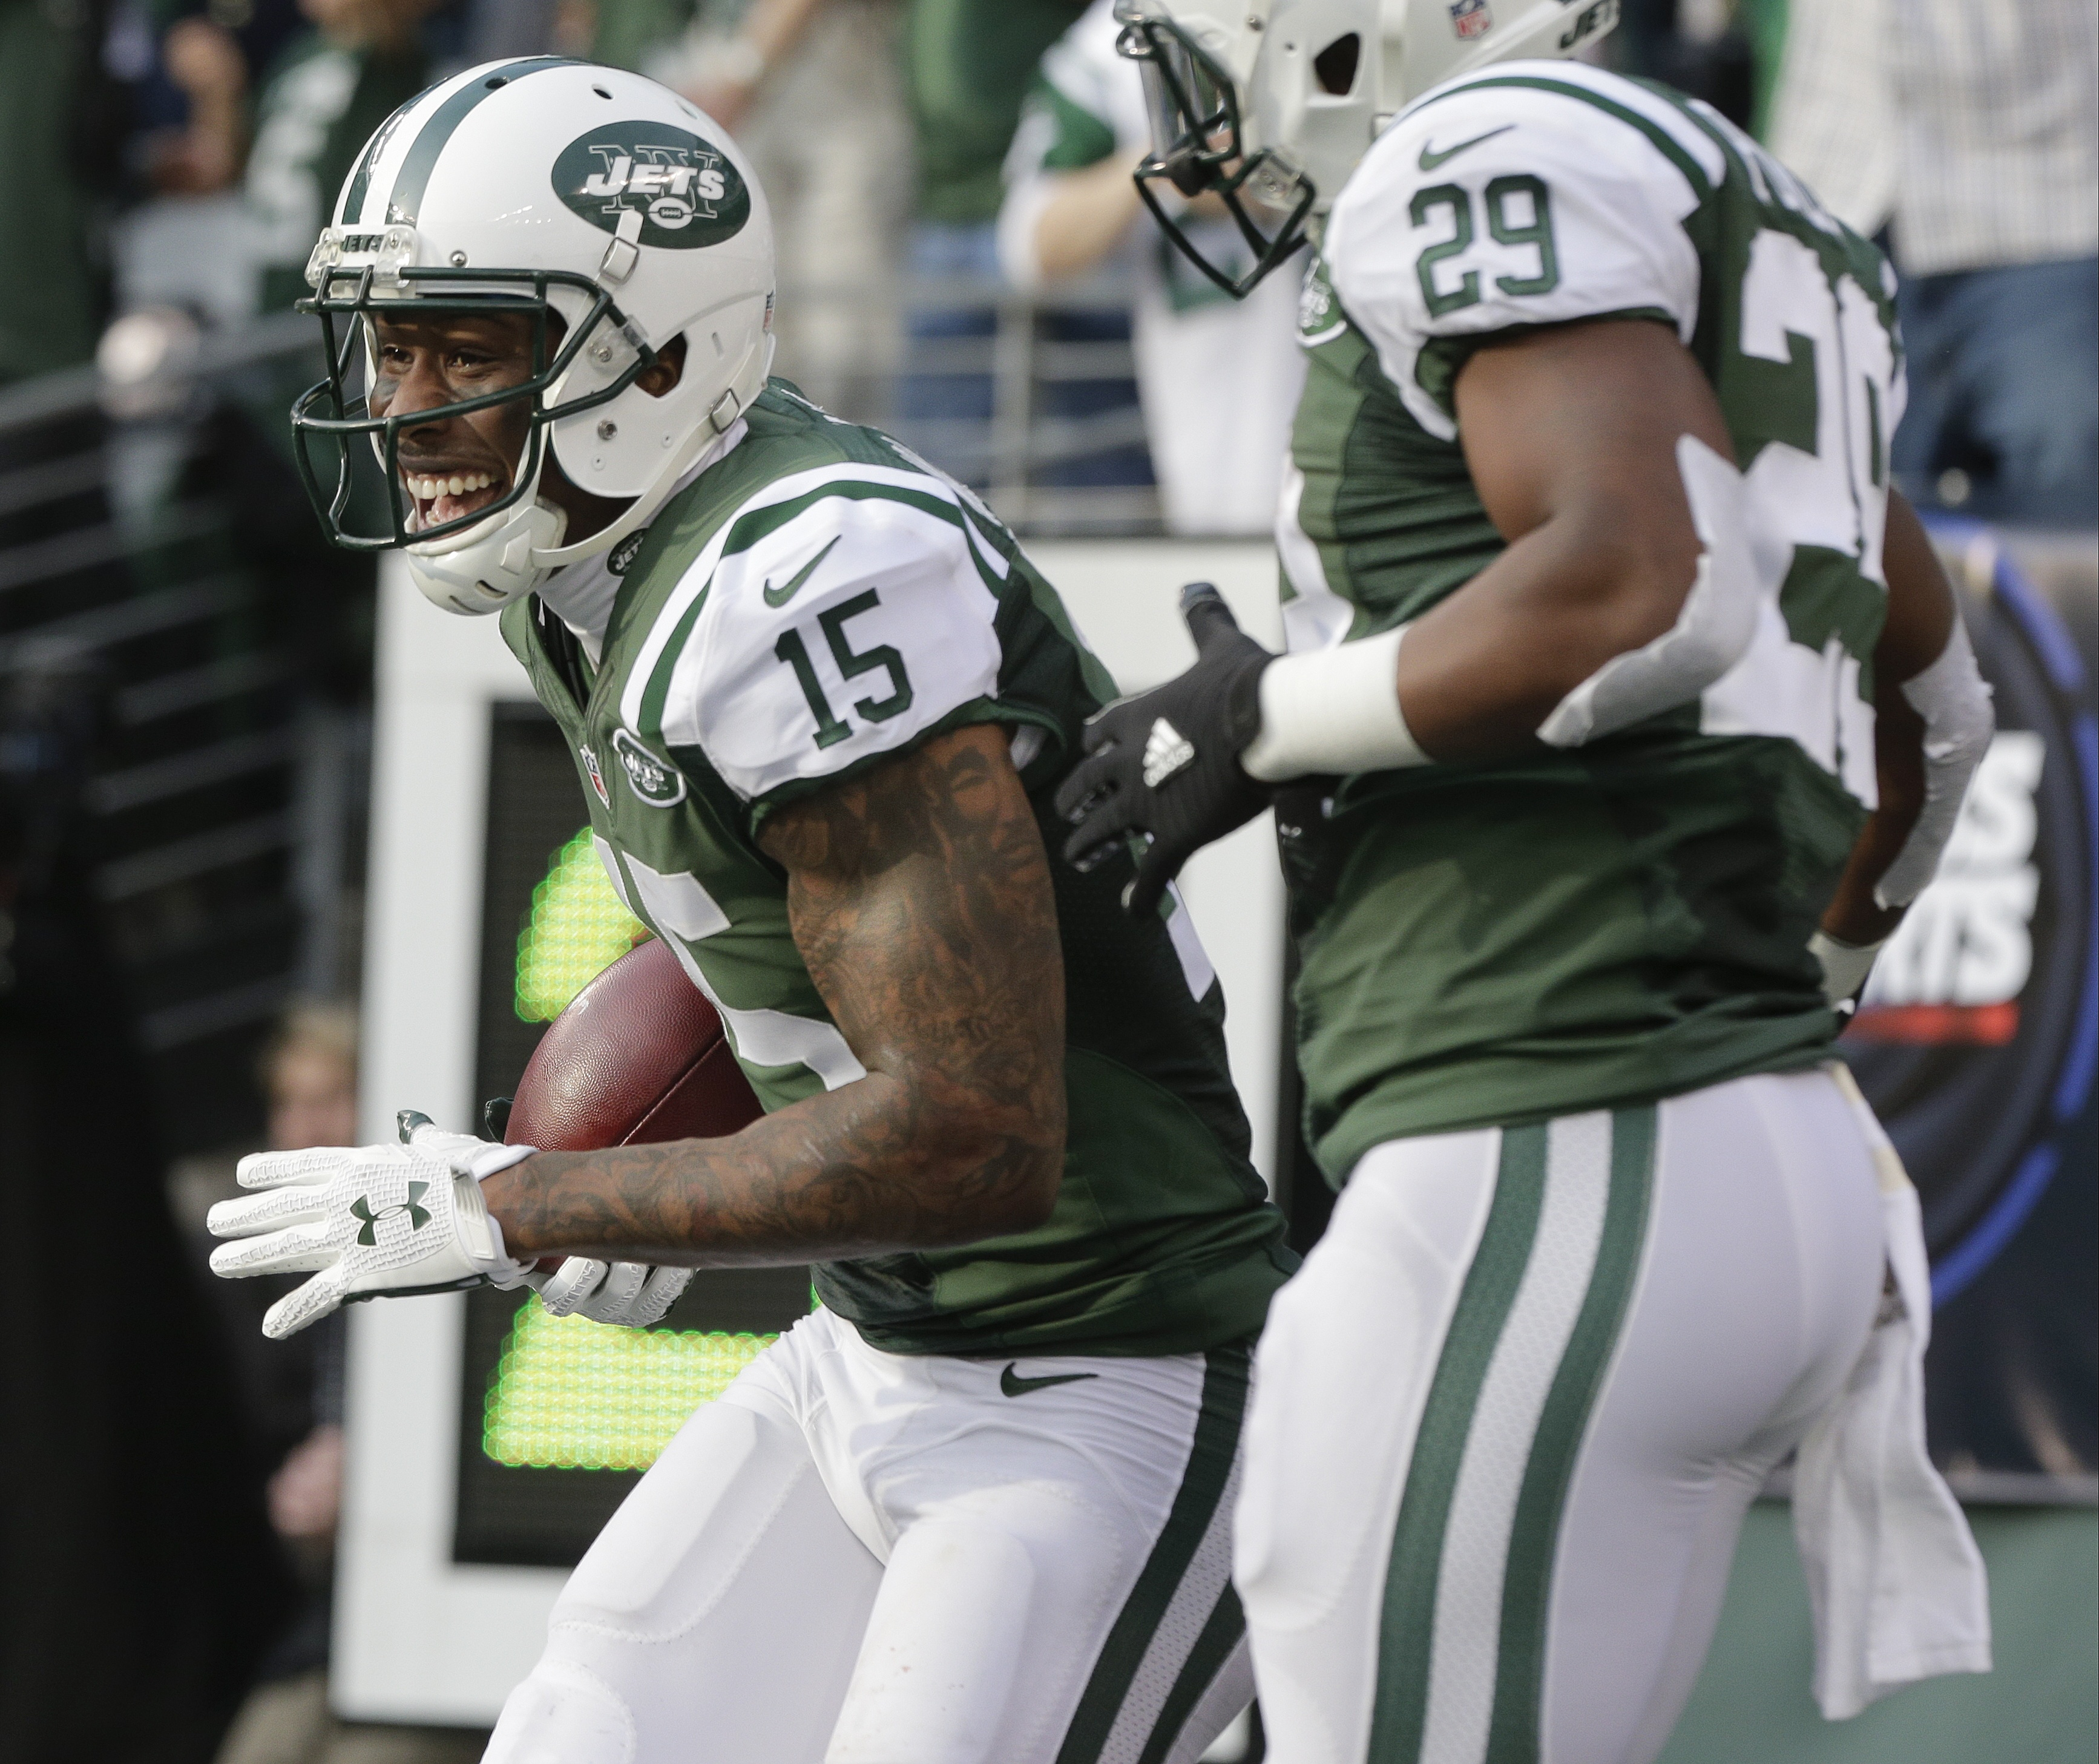 New York Jets wide receiver Brandon Marshall (15) celebrates with teammate Bilal Powell (29) after scoring a touchdown during the first half of an NFL football game against the Tennessee Titans Sunday, Dec. 13, 2015, in East Rutherford, N.J.  (AP Photo/Pe